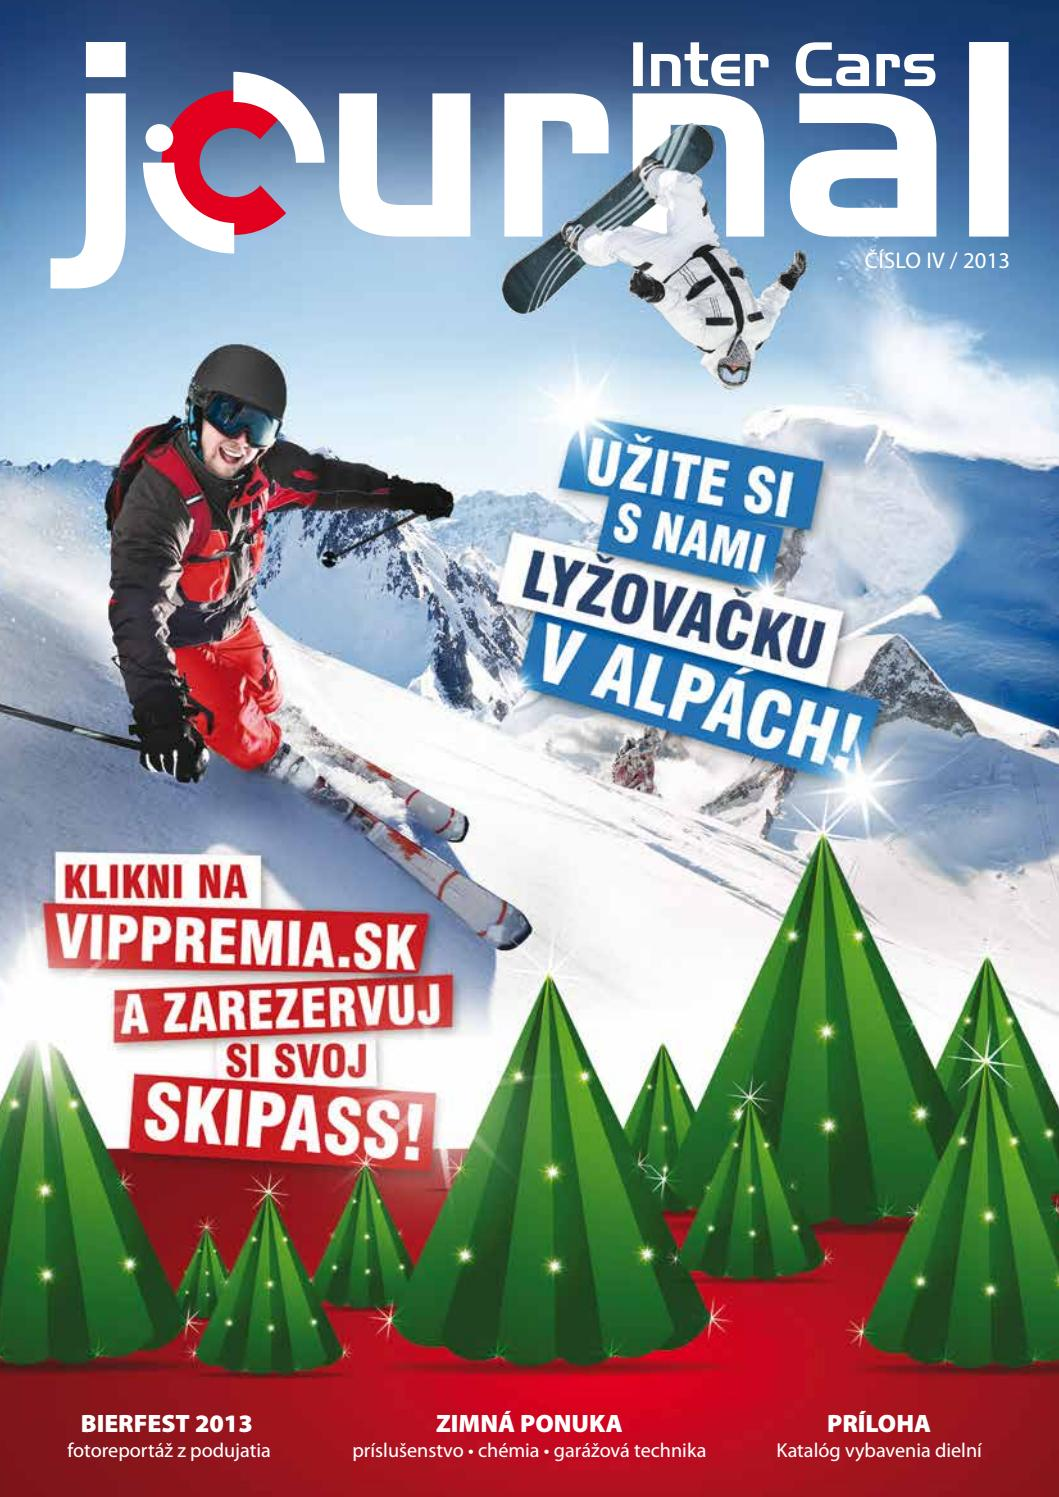 IC JOURNAL 4 2013 by Inter Cars Slovenská republika - issuu 8e3ef19a2f0